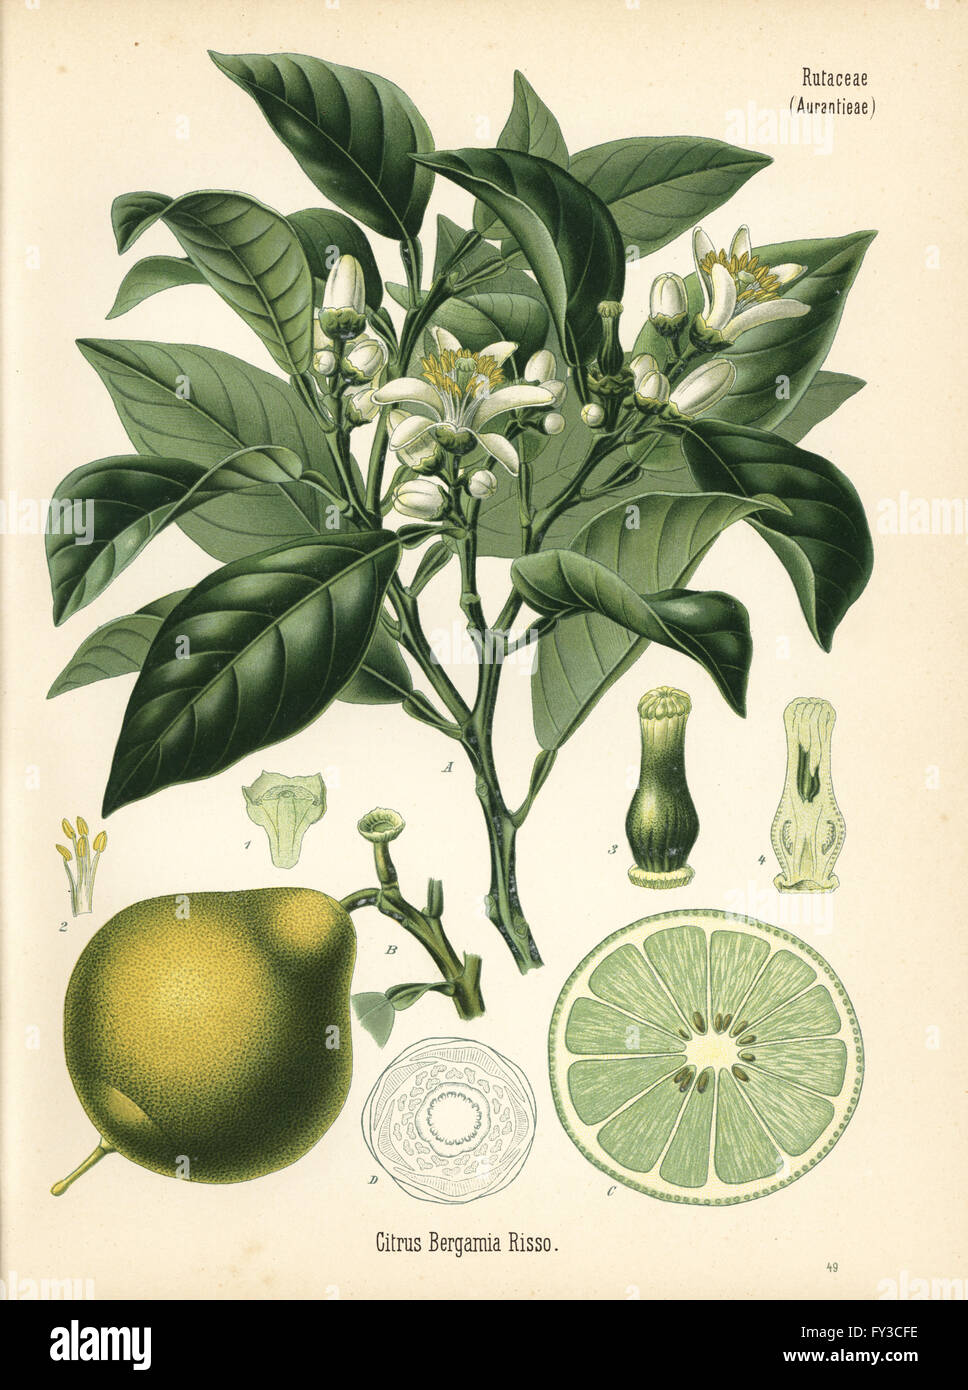 Bergamot Orange Citrus Bergamia Chromolithograph After A Botanical Illustration From Hermann Adolph Koehlers Medicinal Plants Edited By Gustav Pabst